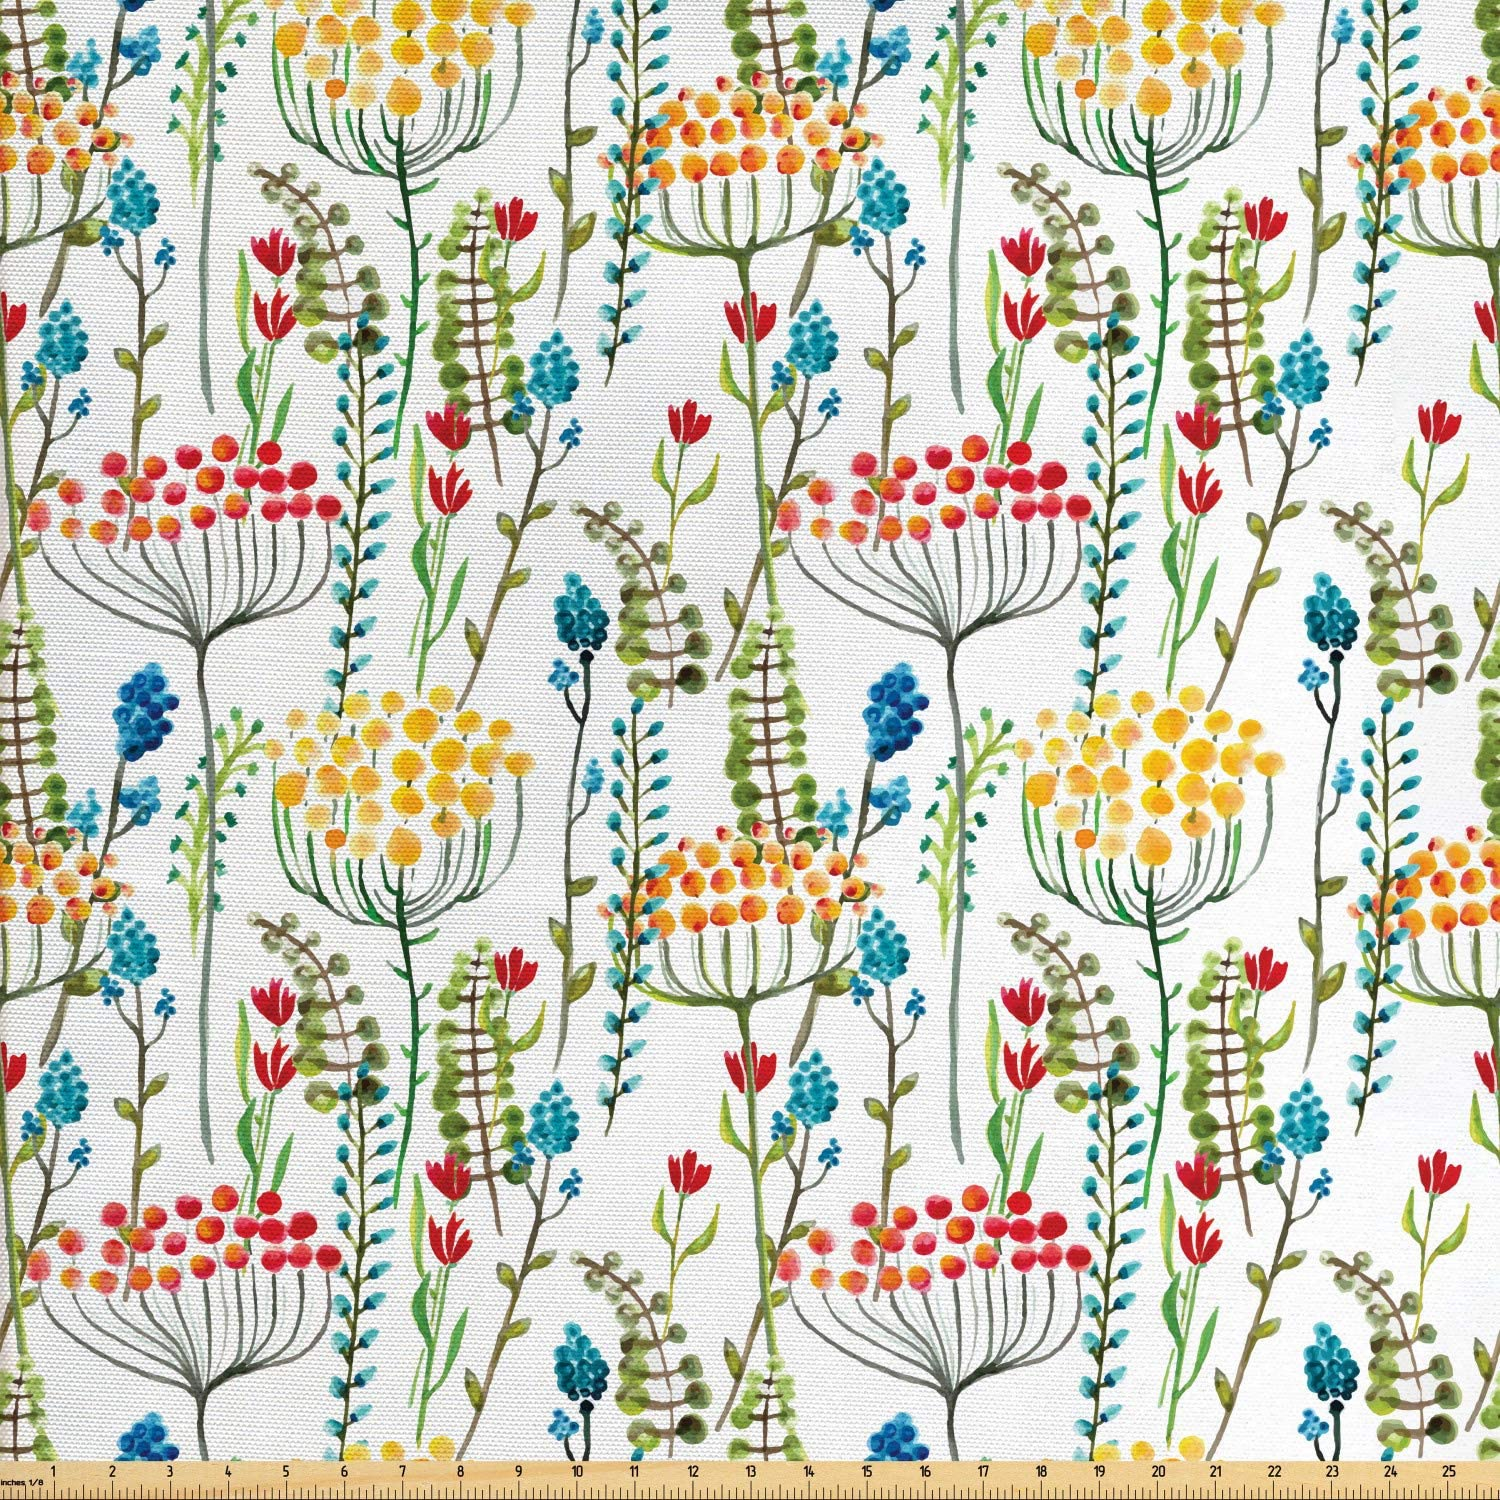 Lunarable Floral Fabric by The Yard, Hand Drawn Doodle Style Flowers Blossoms in Watercolors Natural Botanical Garden Art, Decorative Fabric for Upholstery and Home Accents, 2 Yards, Magenta Yellow